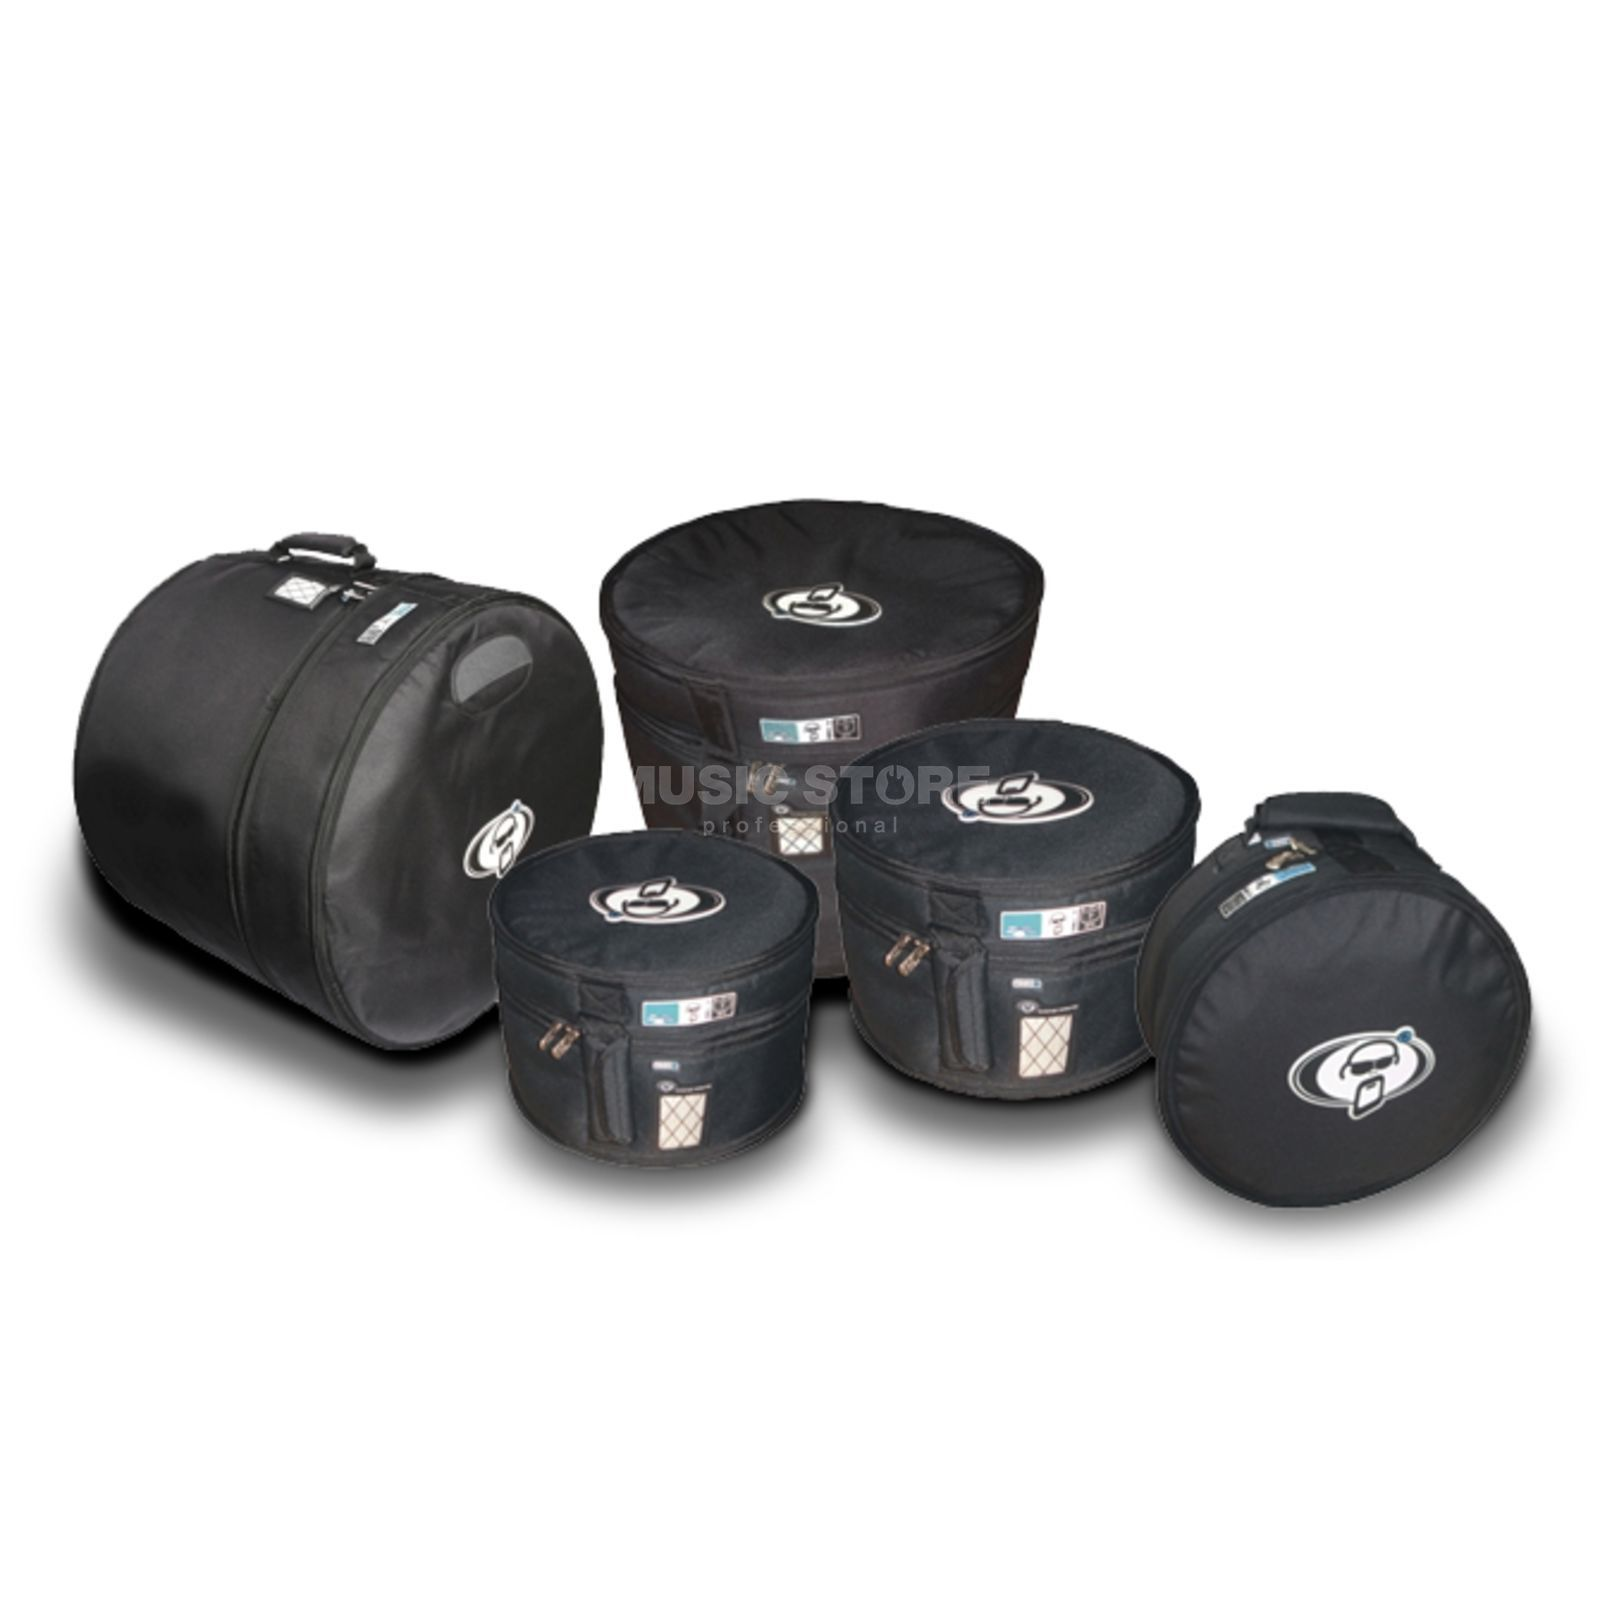 "Protection Racket BagSet SET 8, 22""x18"",12""x10"", 13""x11"", 16""x16"", 14""x6,5"" Produktbild"